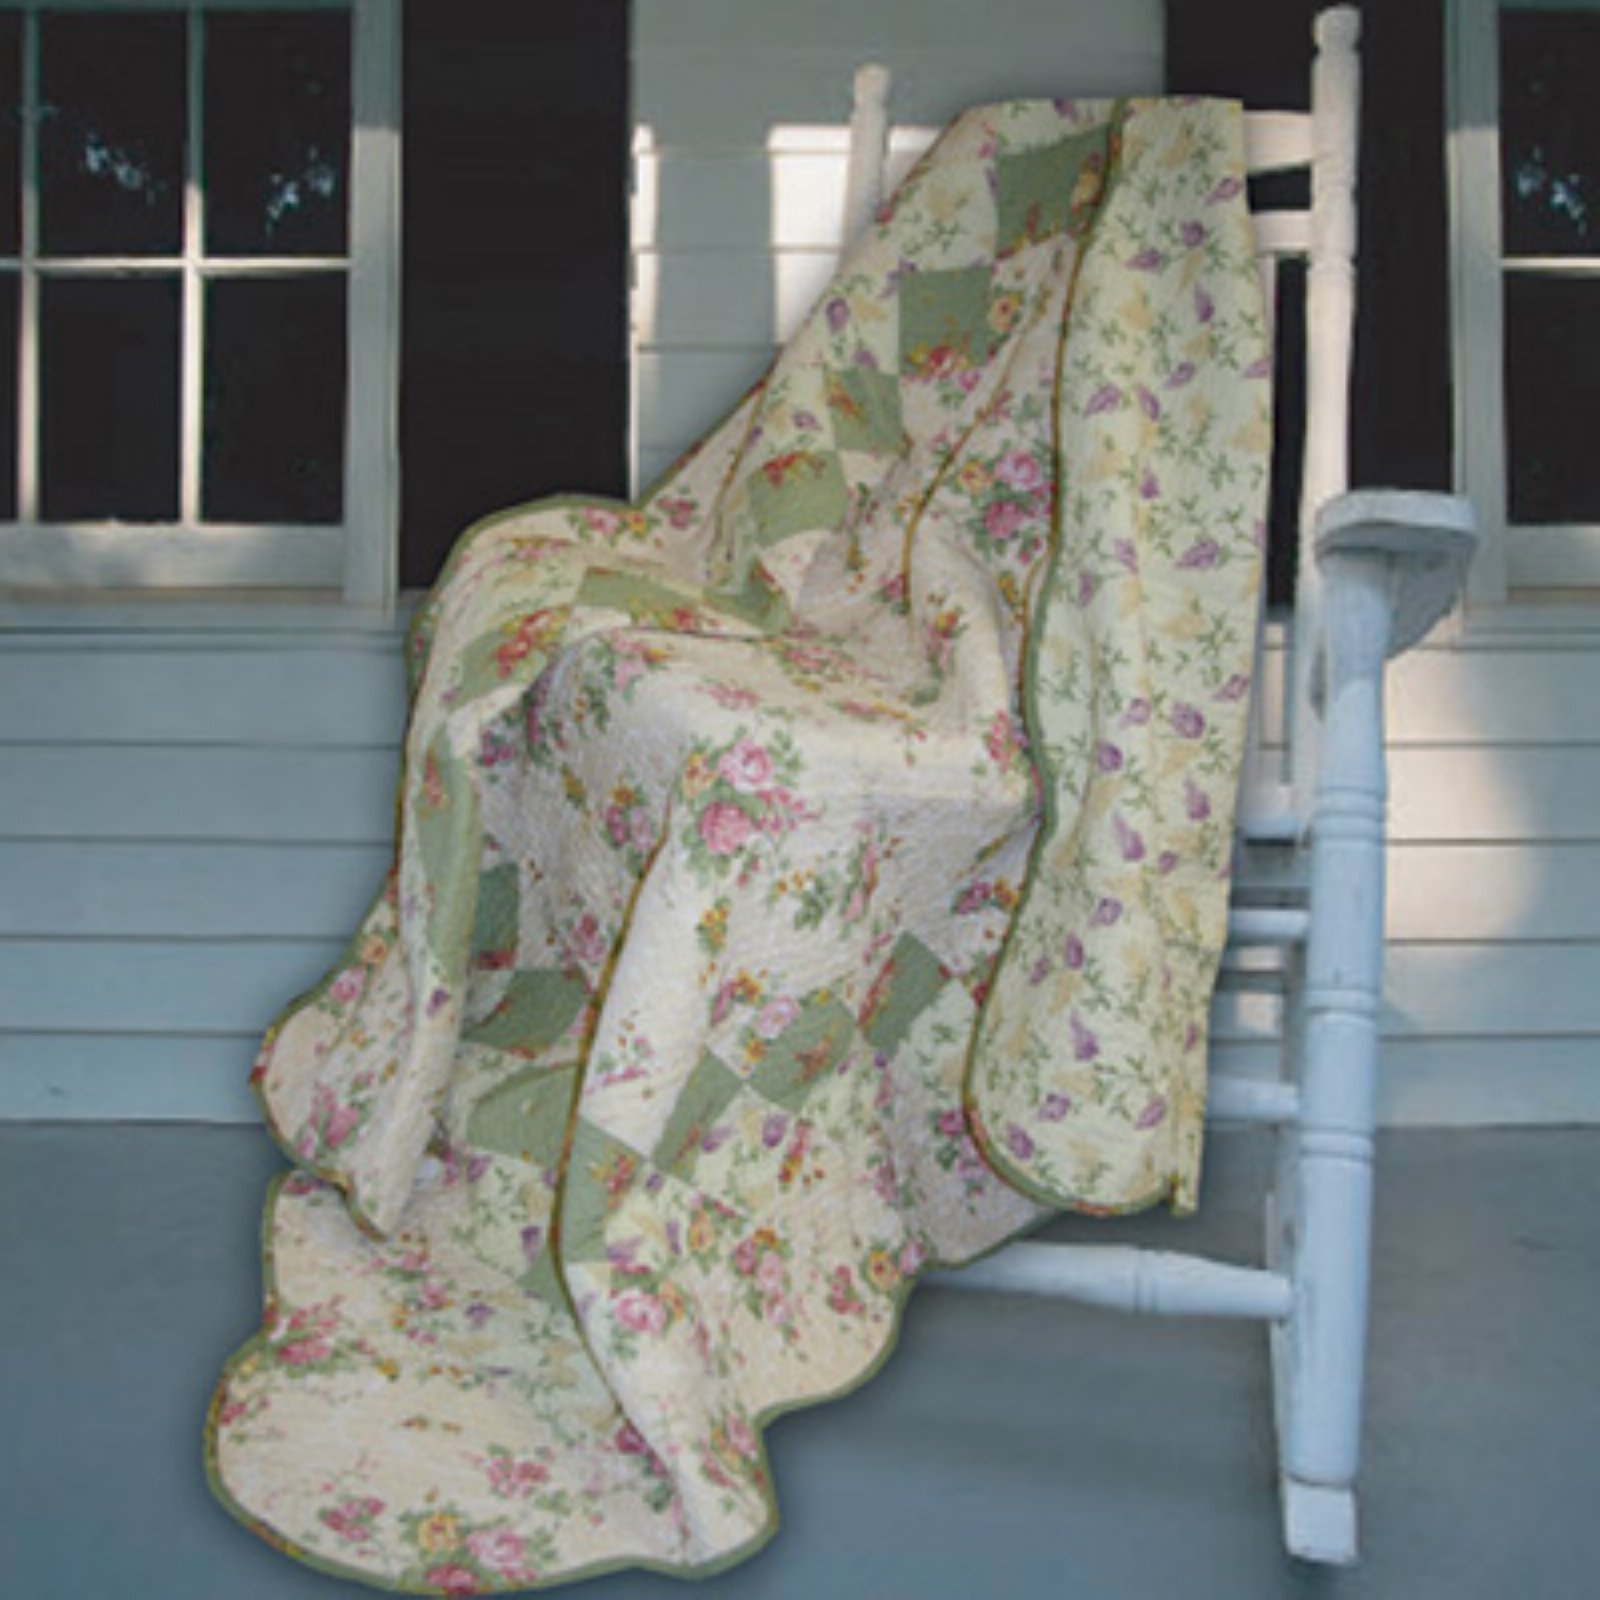 Greenland Home Fashions Bliss - 50W x 60L in. Quilted Throw - Ivory